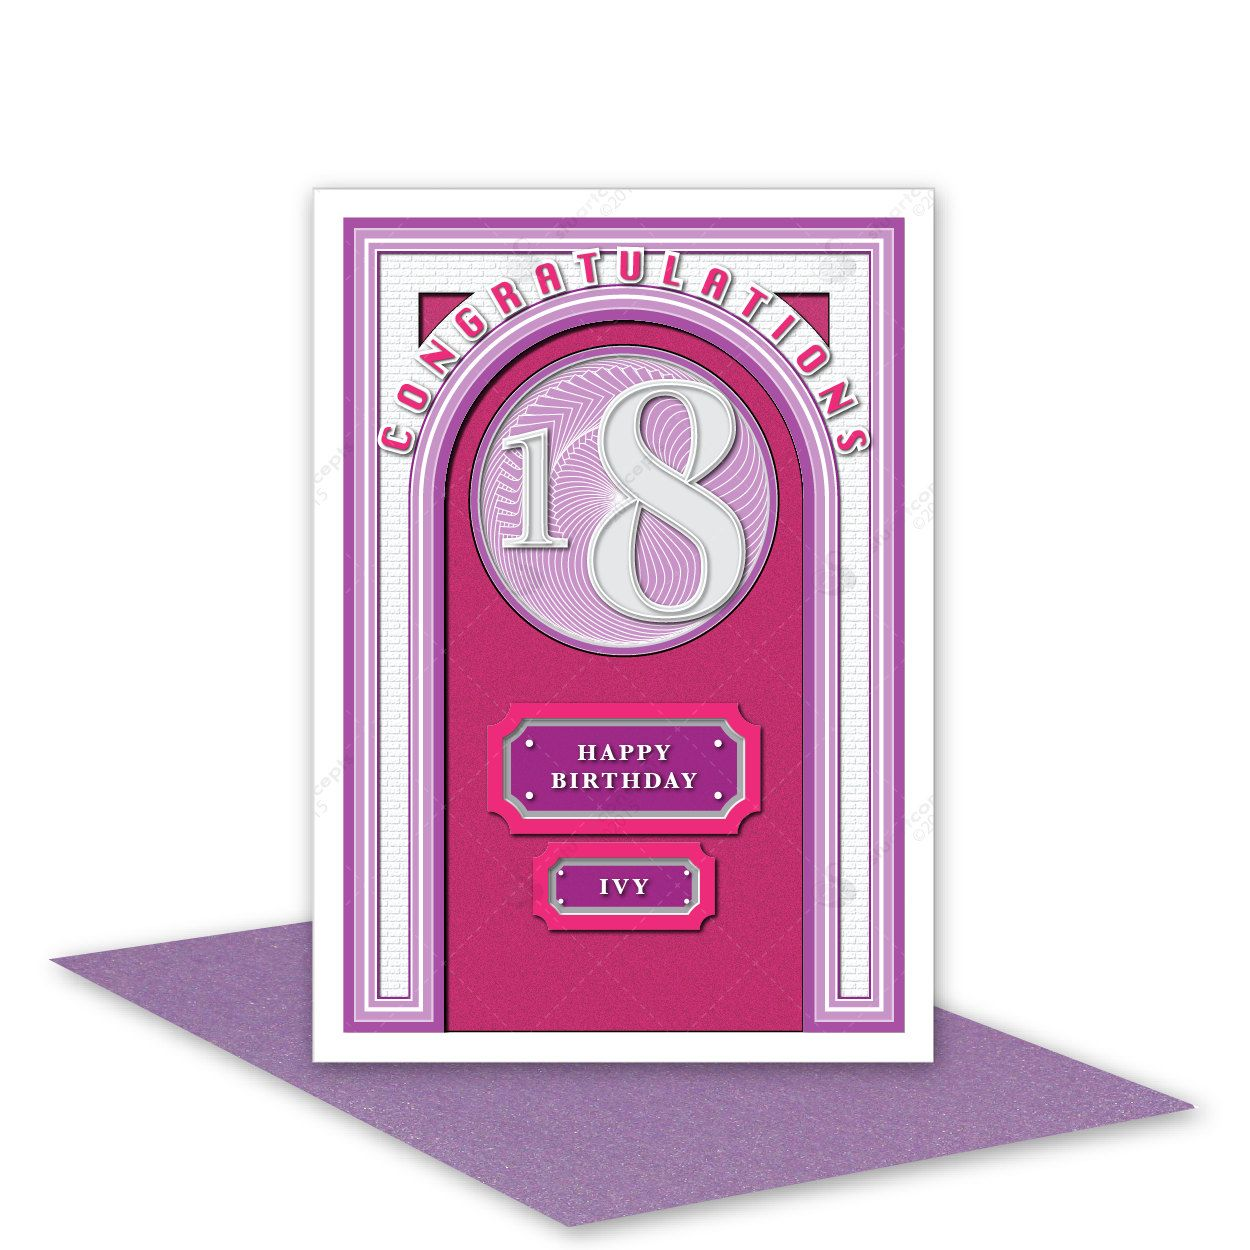 Pin on Cards, Stationery, Gift Tags